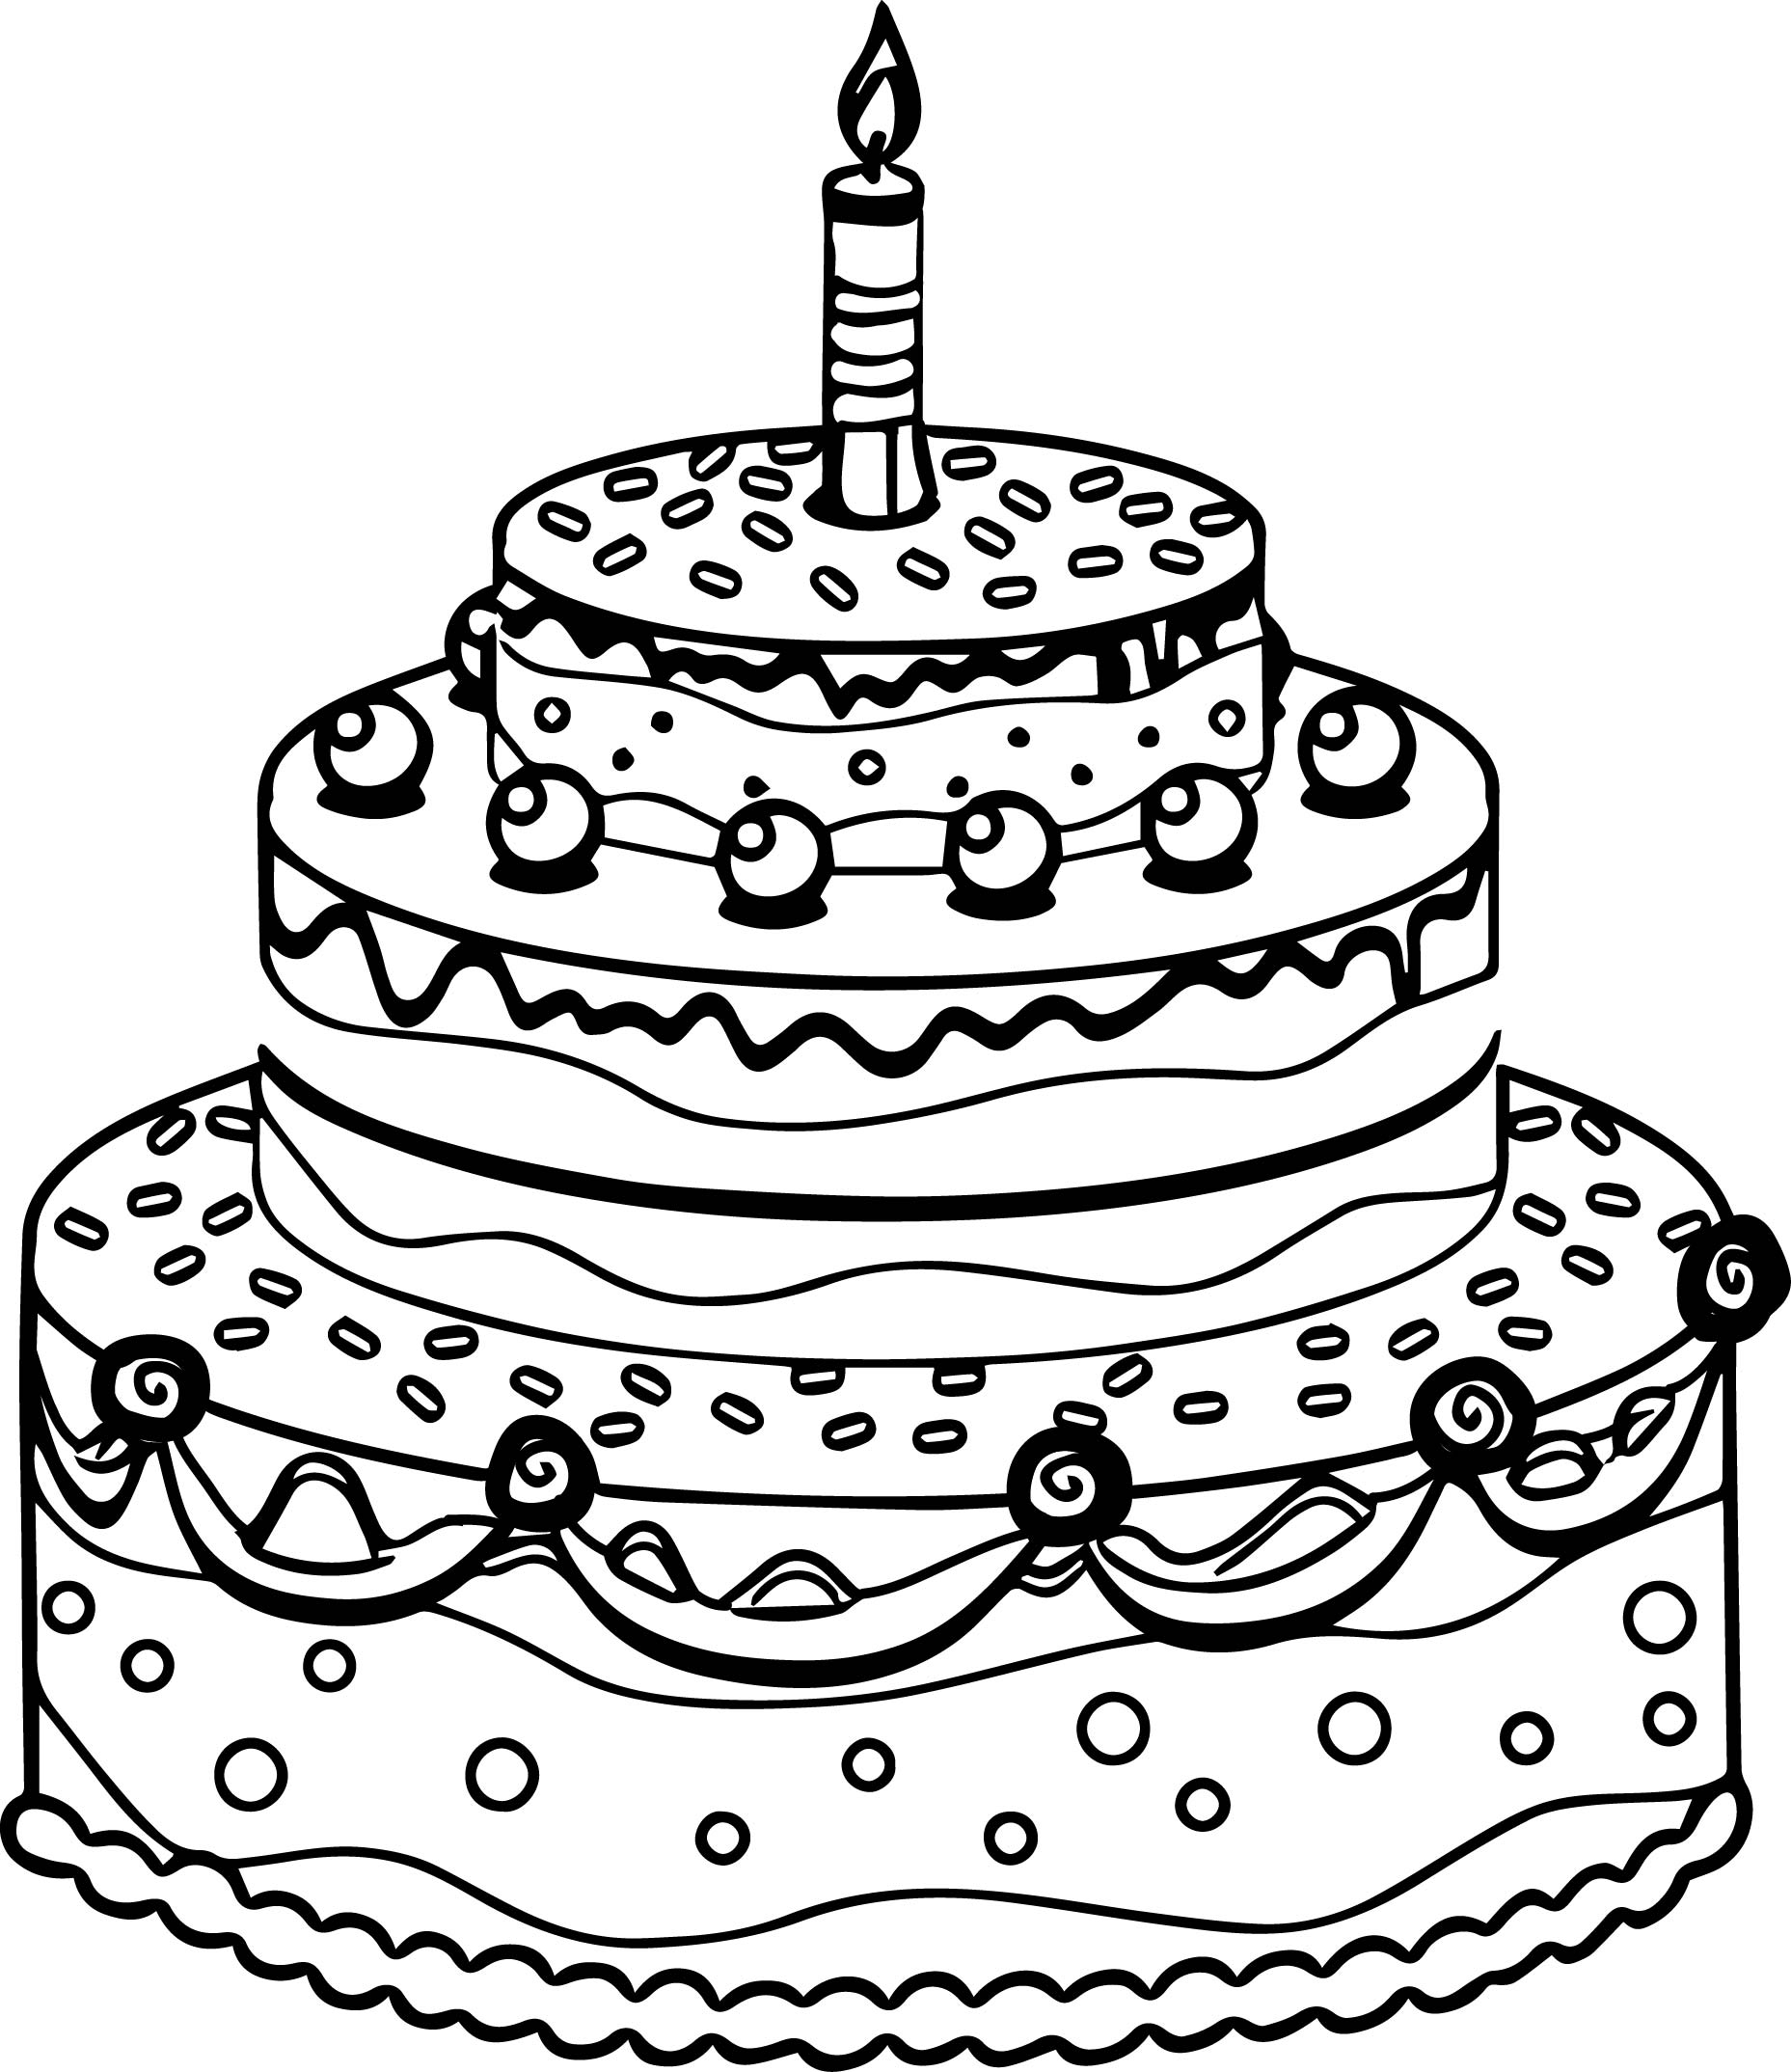 Coloring Page Of Birthday Cake